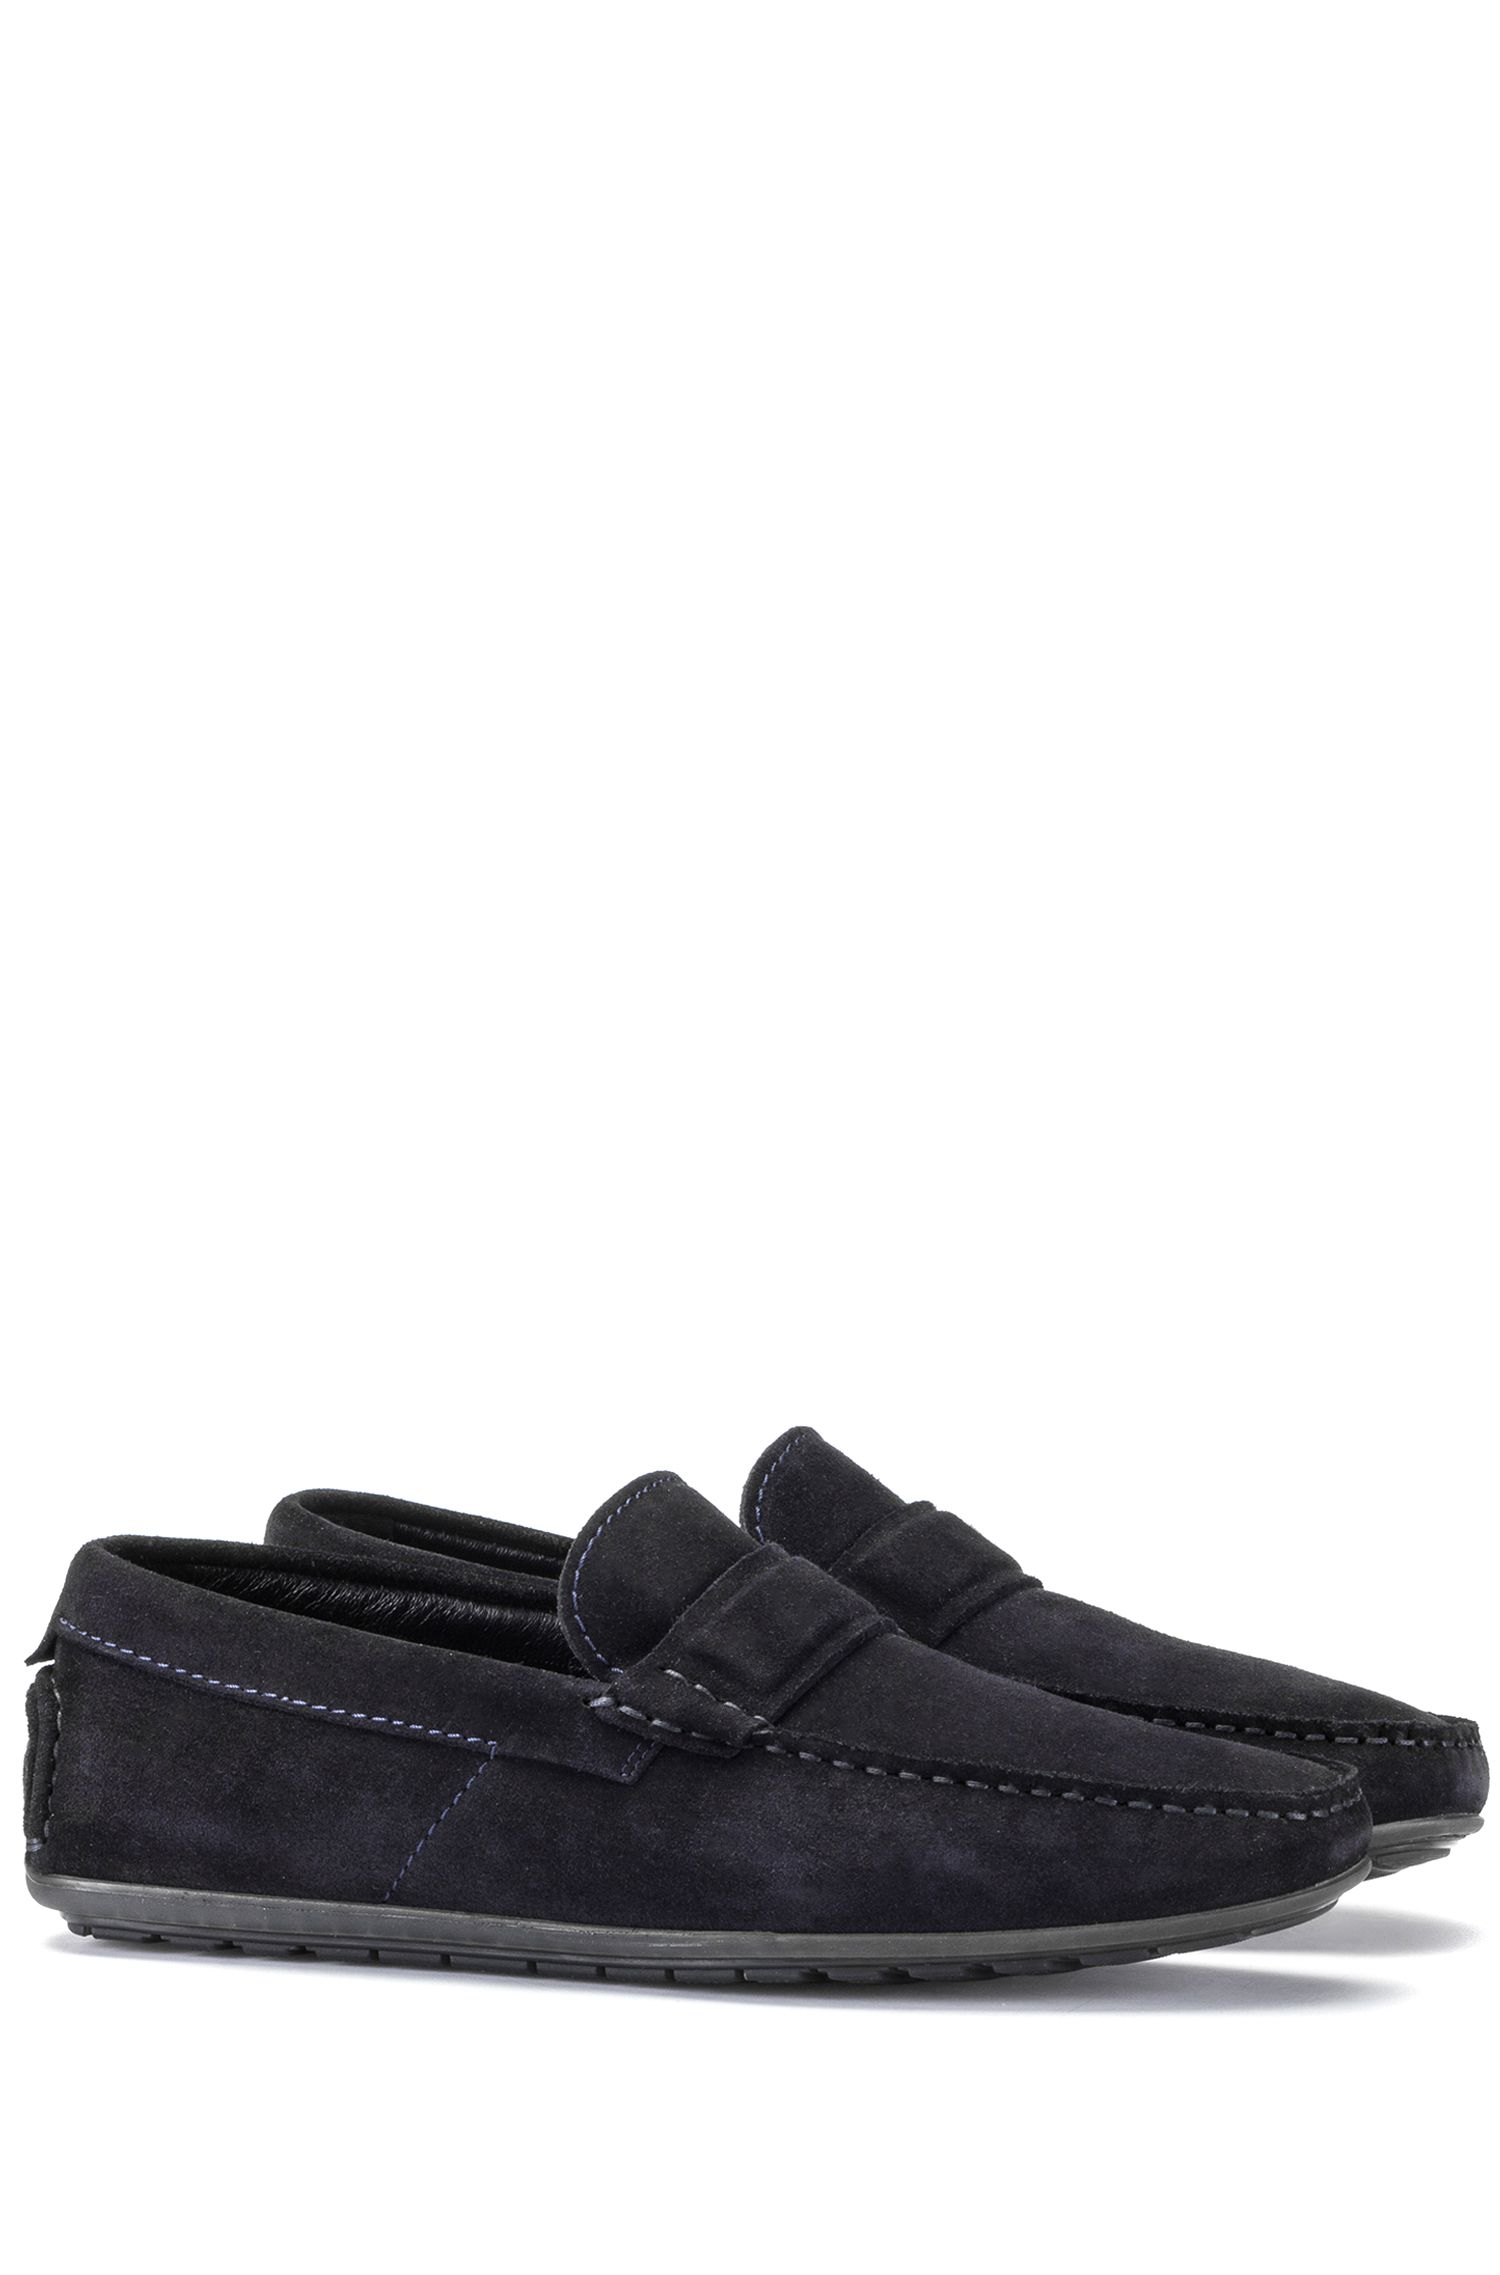 Slip-on moccasins in suede leather